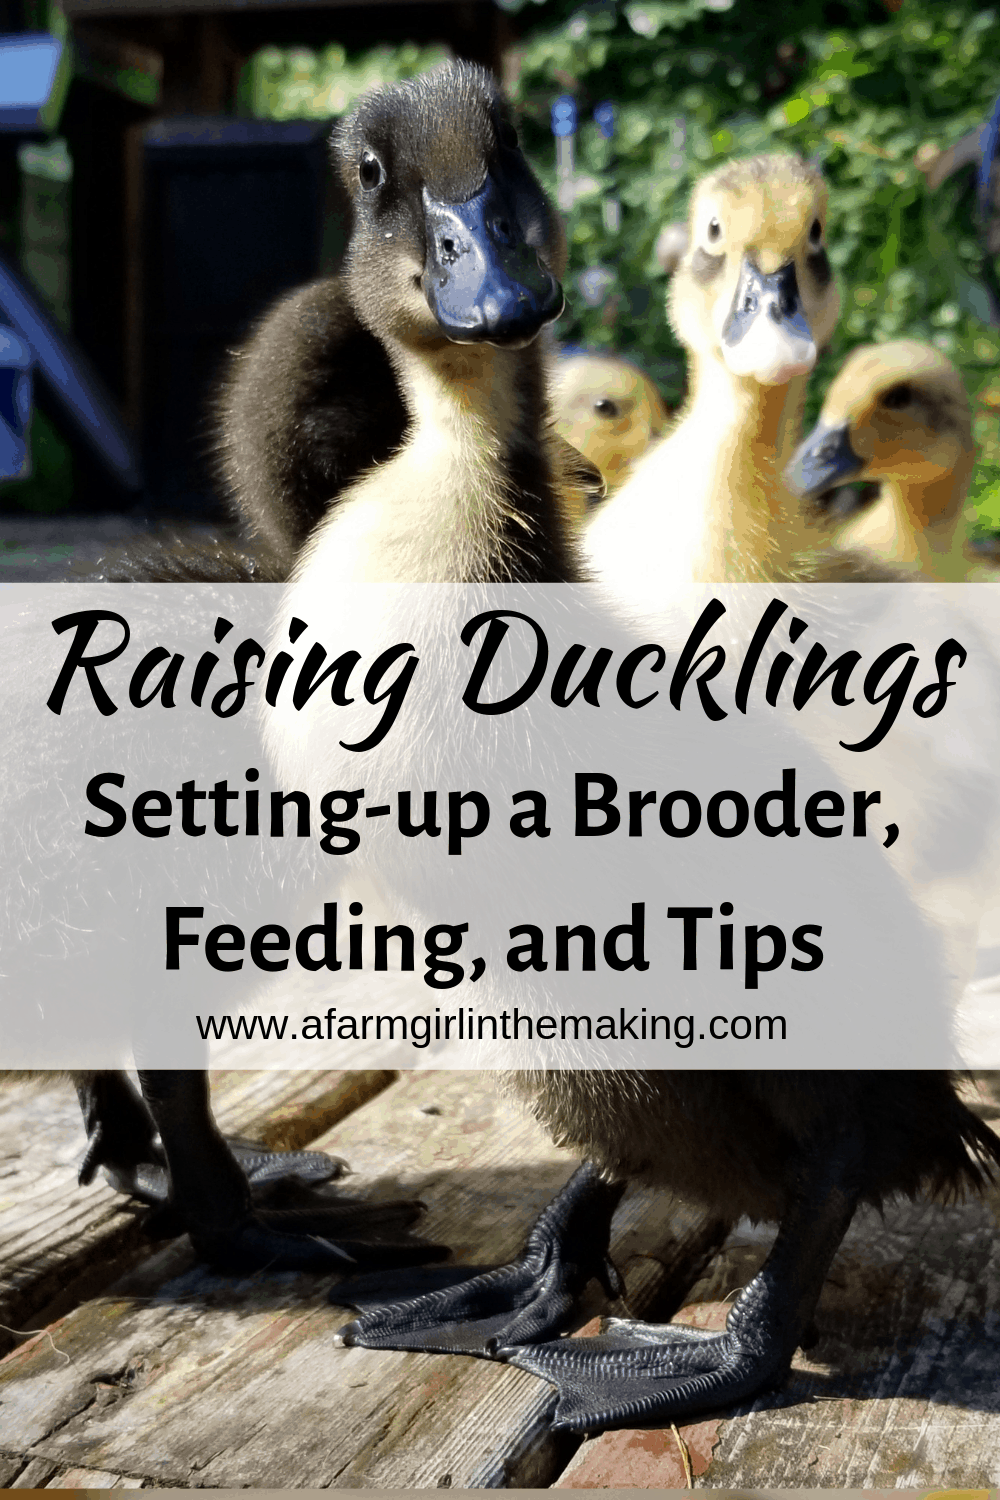 Raising Ducklings | Brooding, Feed, Tips